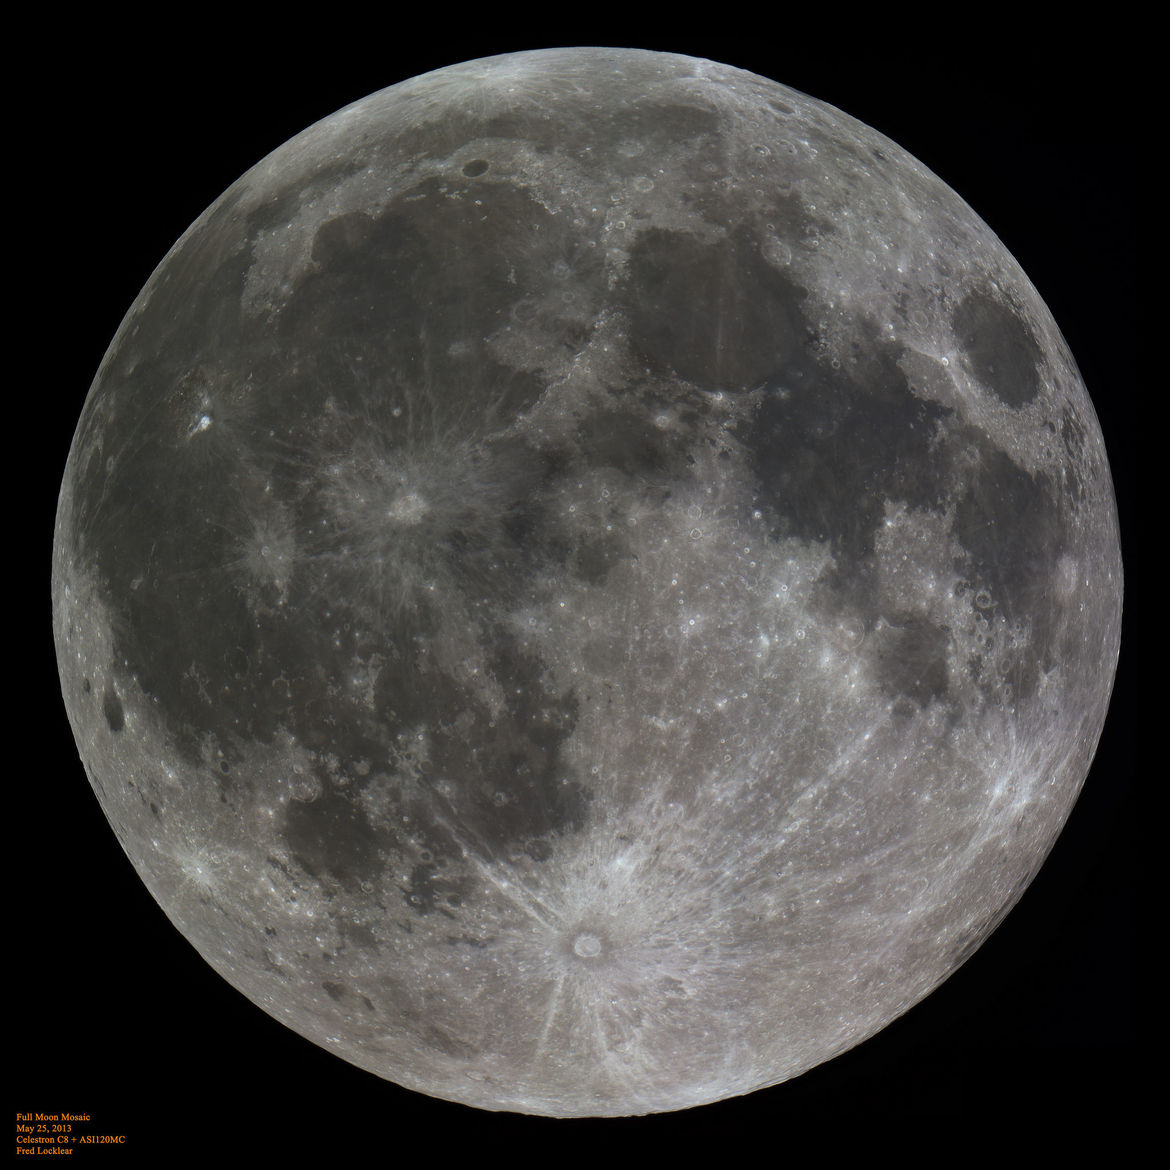 The full Moon, with Aristarchus crater standing out in the upper left. Credit: Fred Locklear